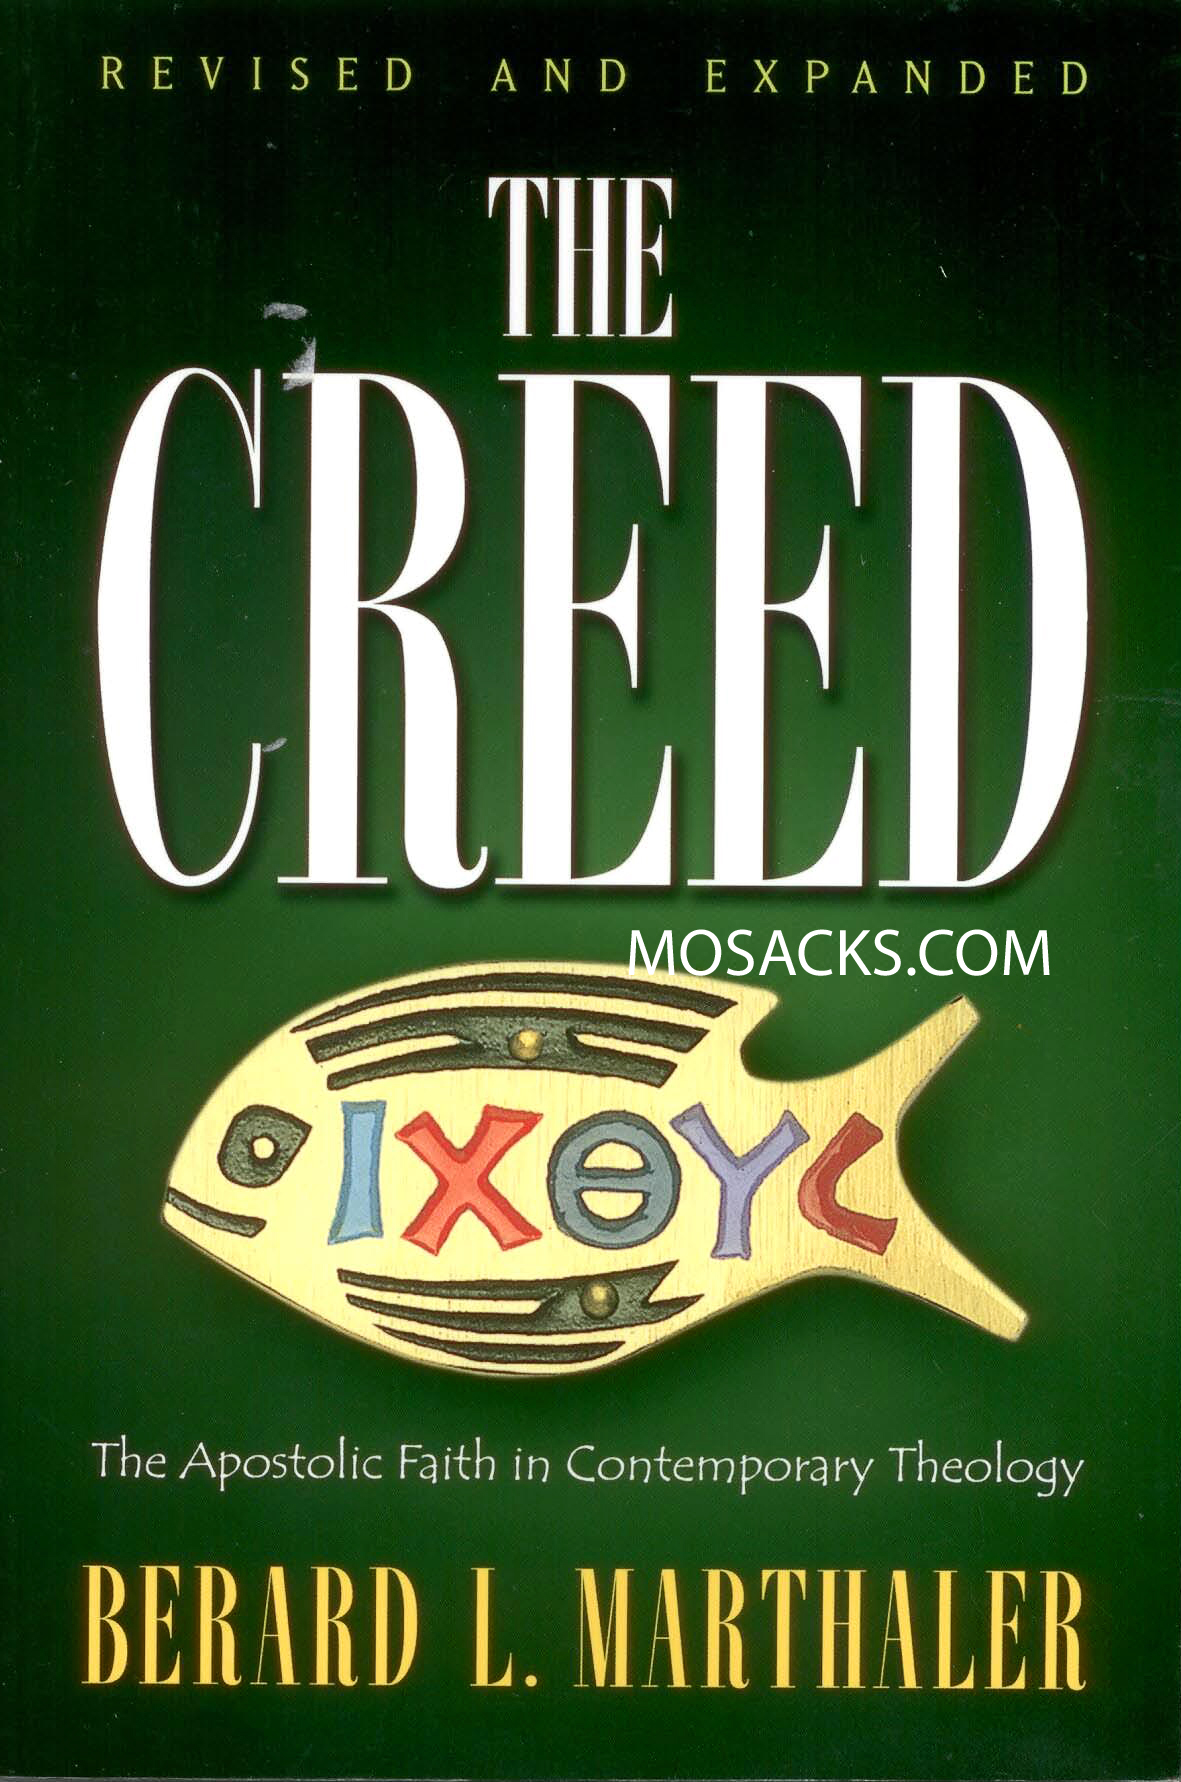 The Creed by Berard L. Marthaler